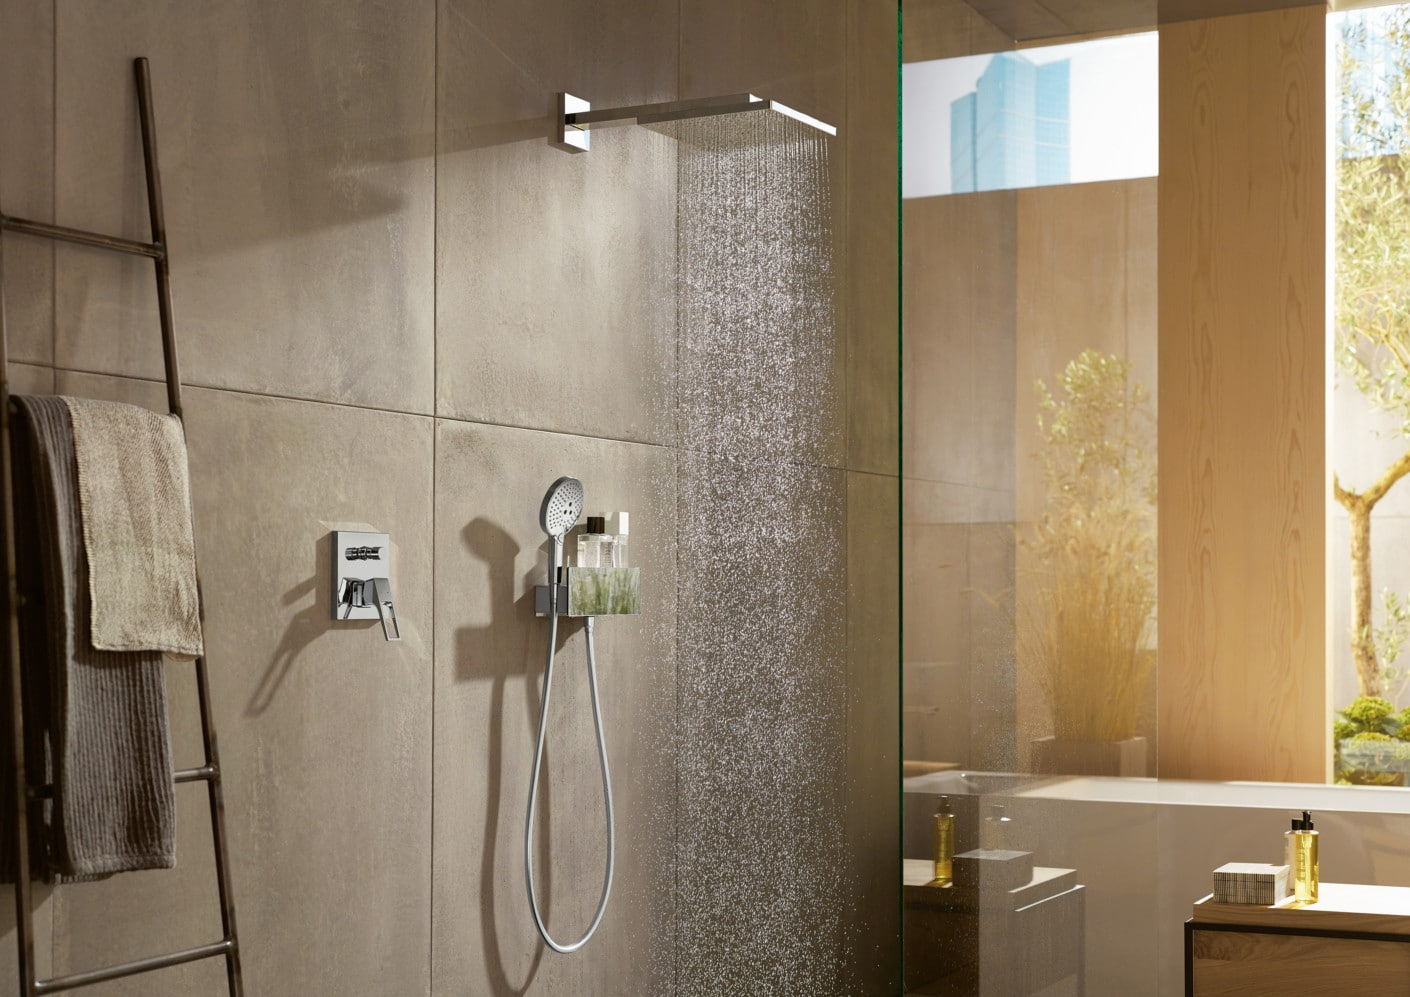 Hansgrohe Axor Square Rectangular Shower Heads Bathhouse